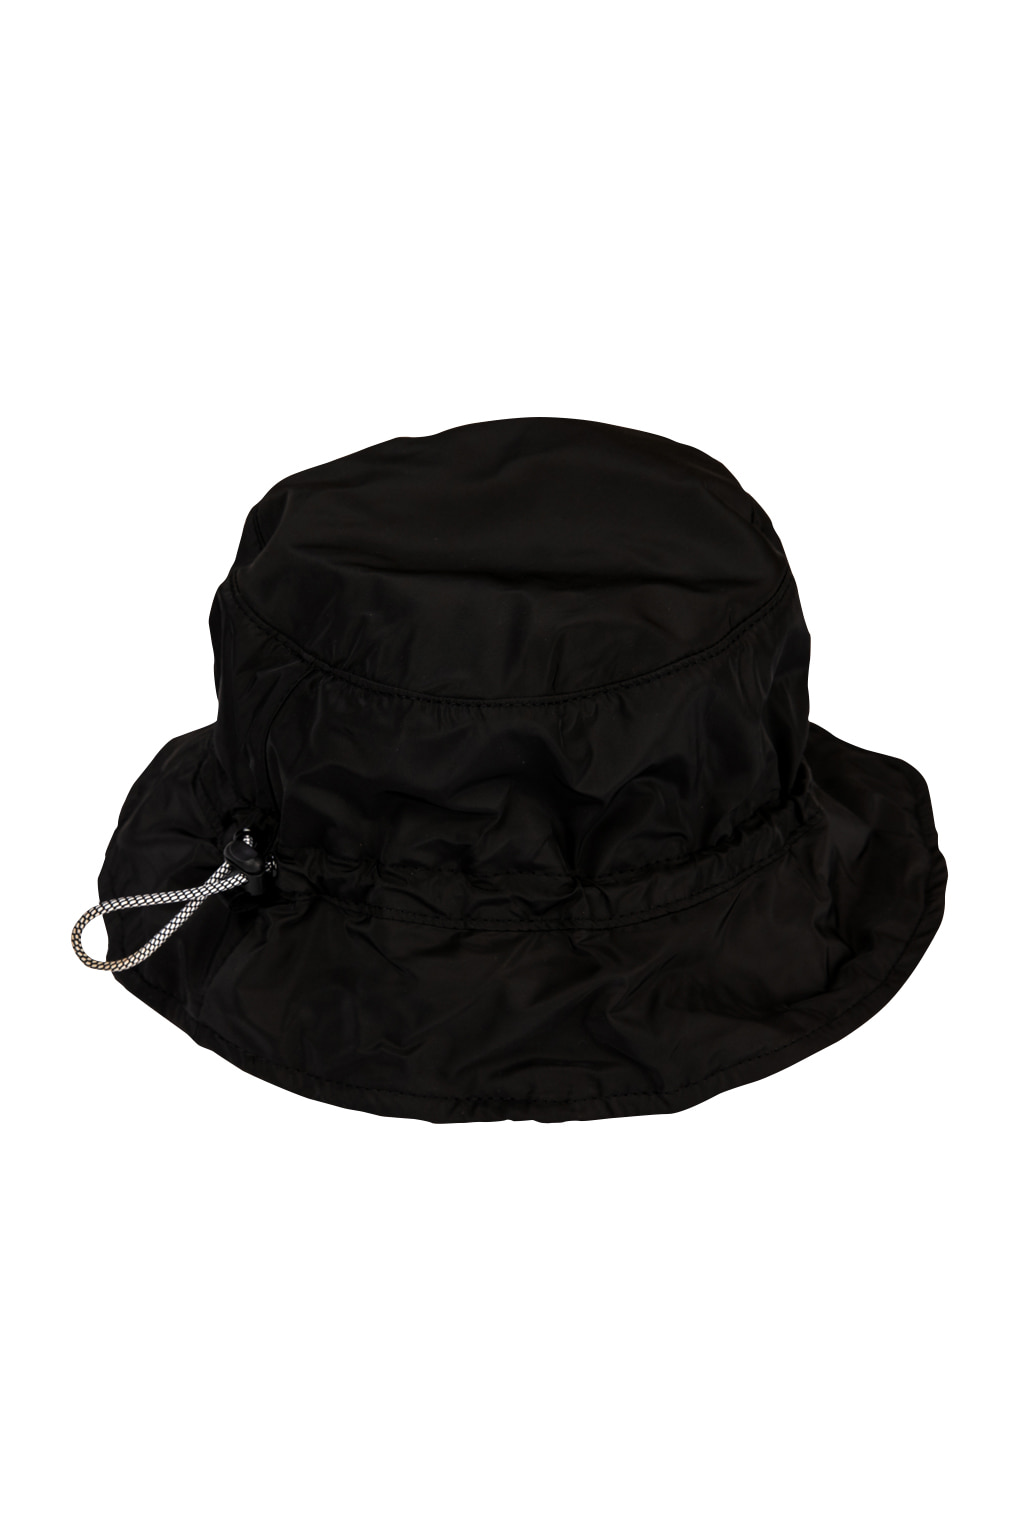 wave string bucket hat - black